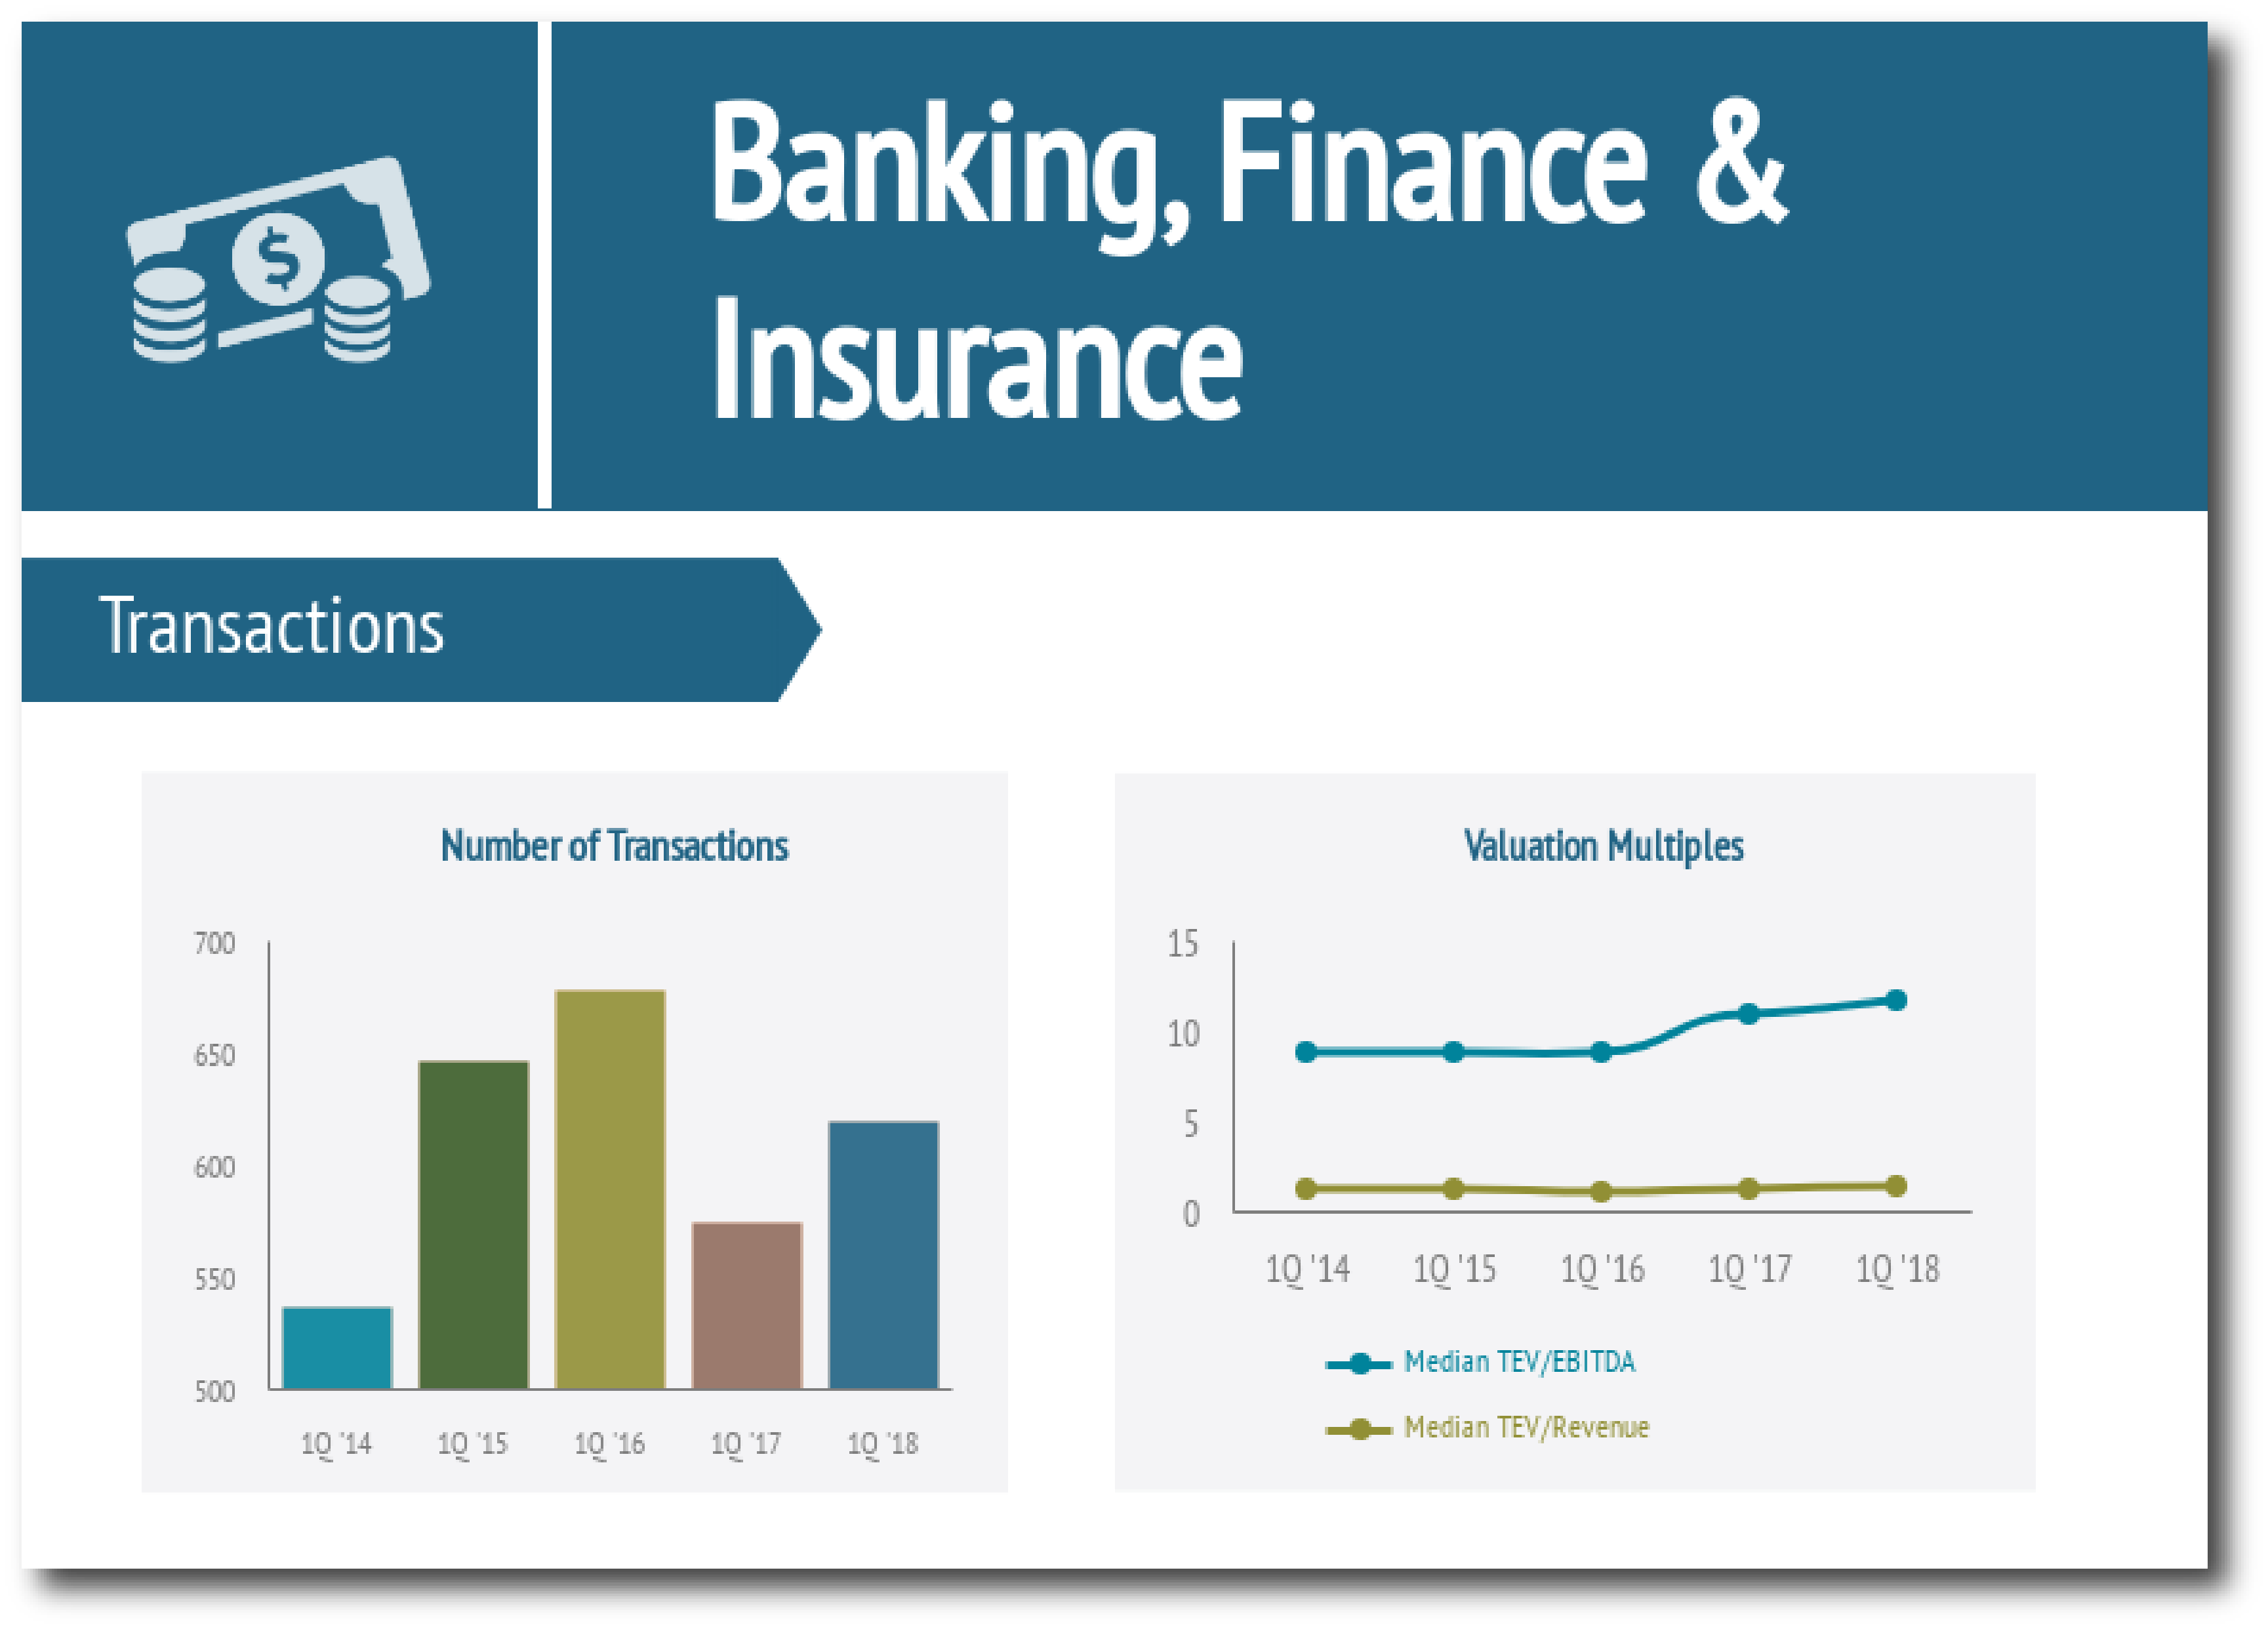 Banking, Finance & Insurance Industry Report